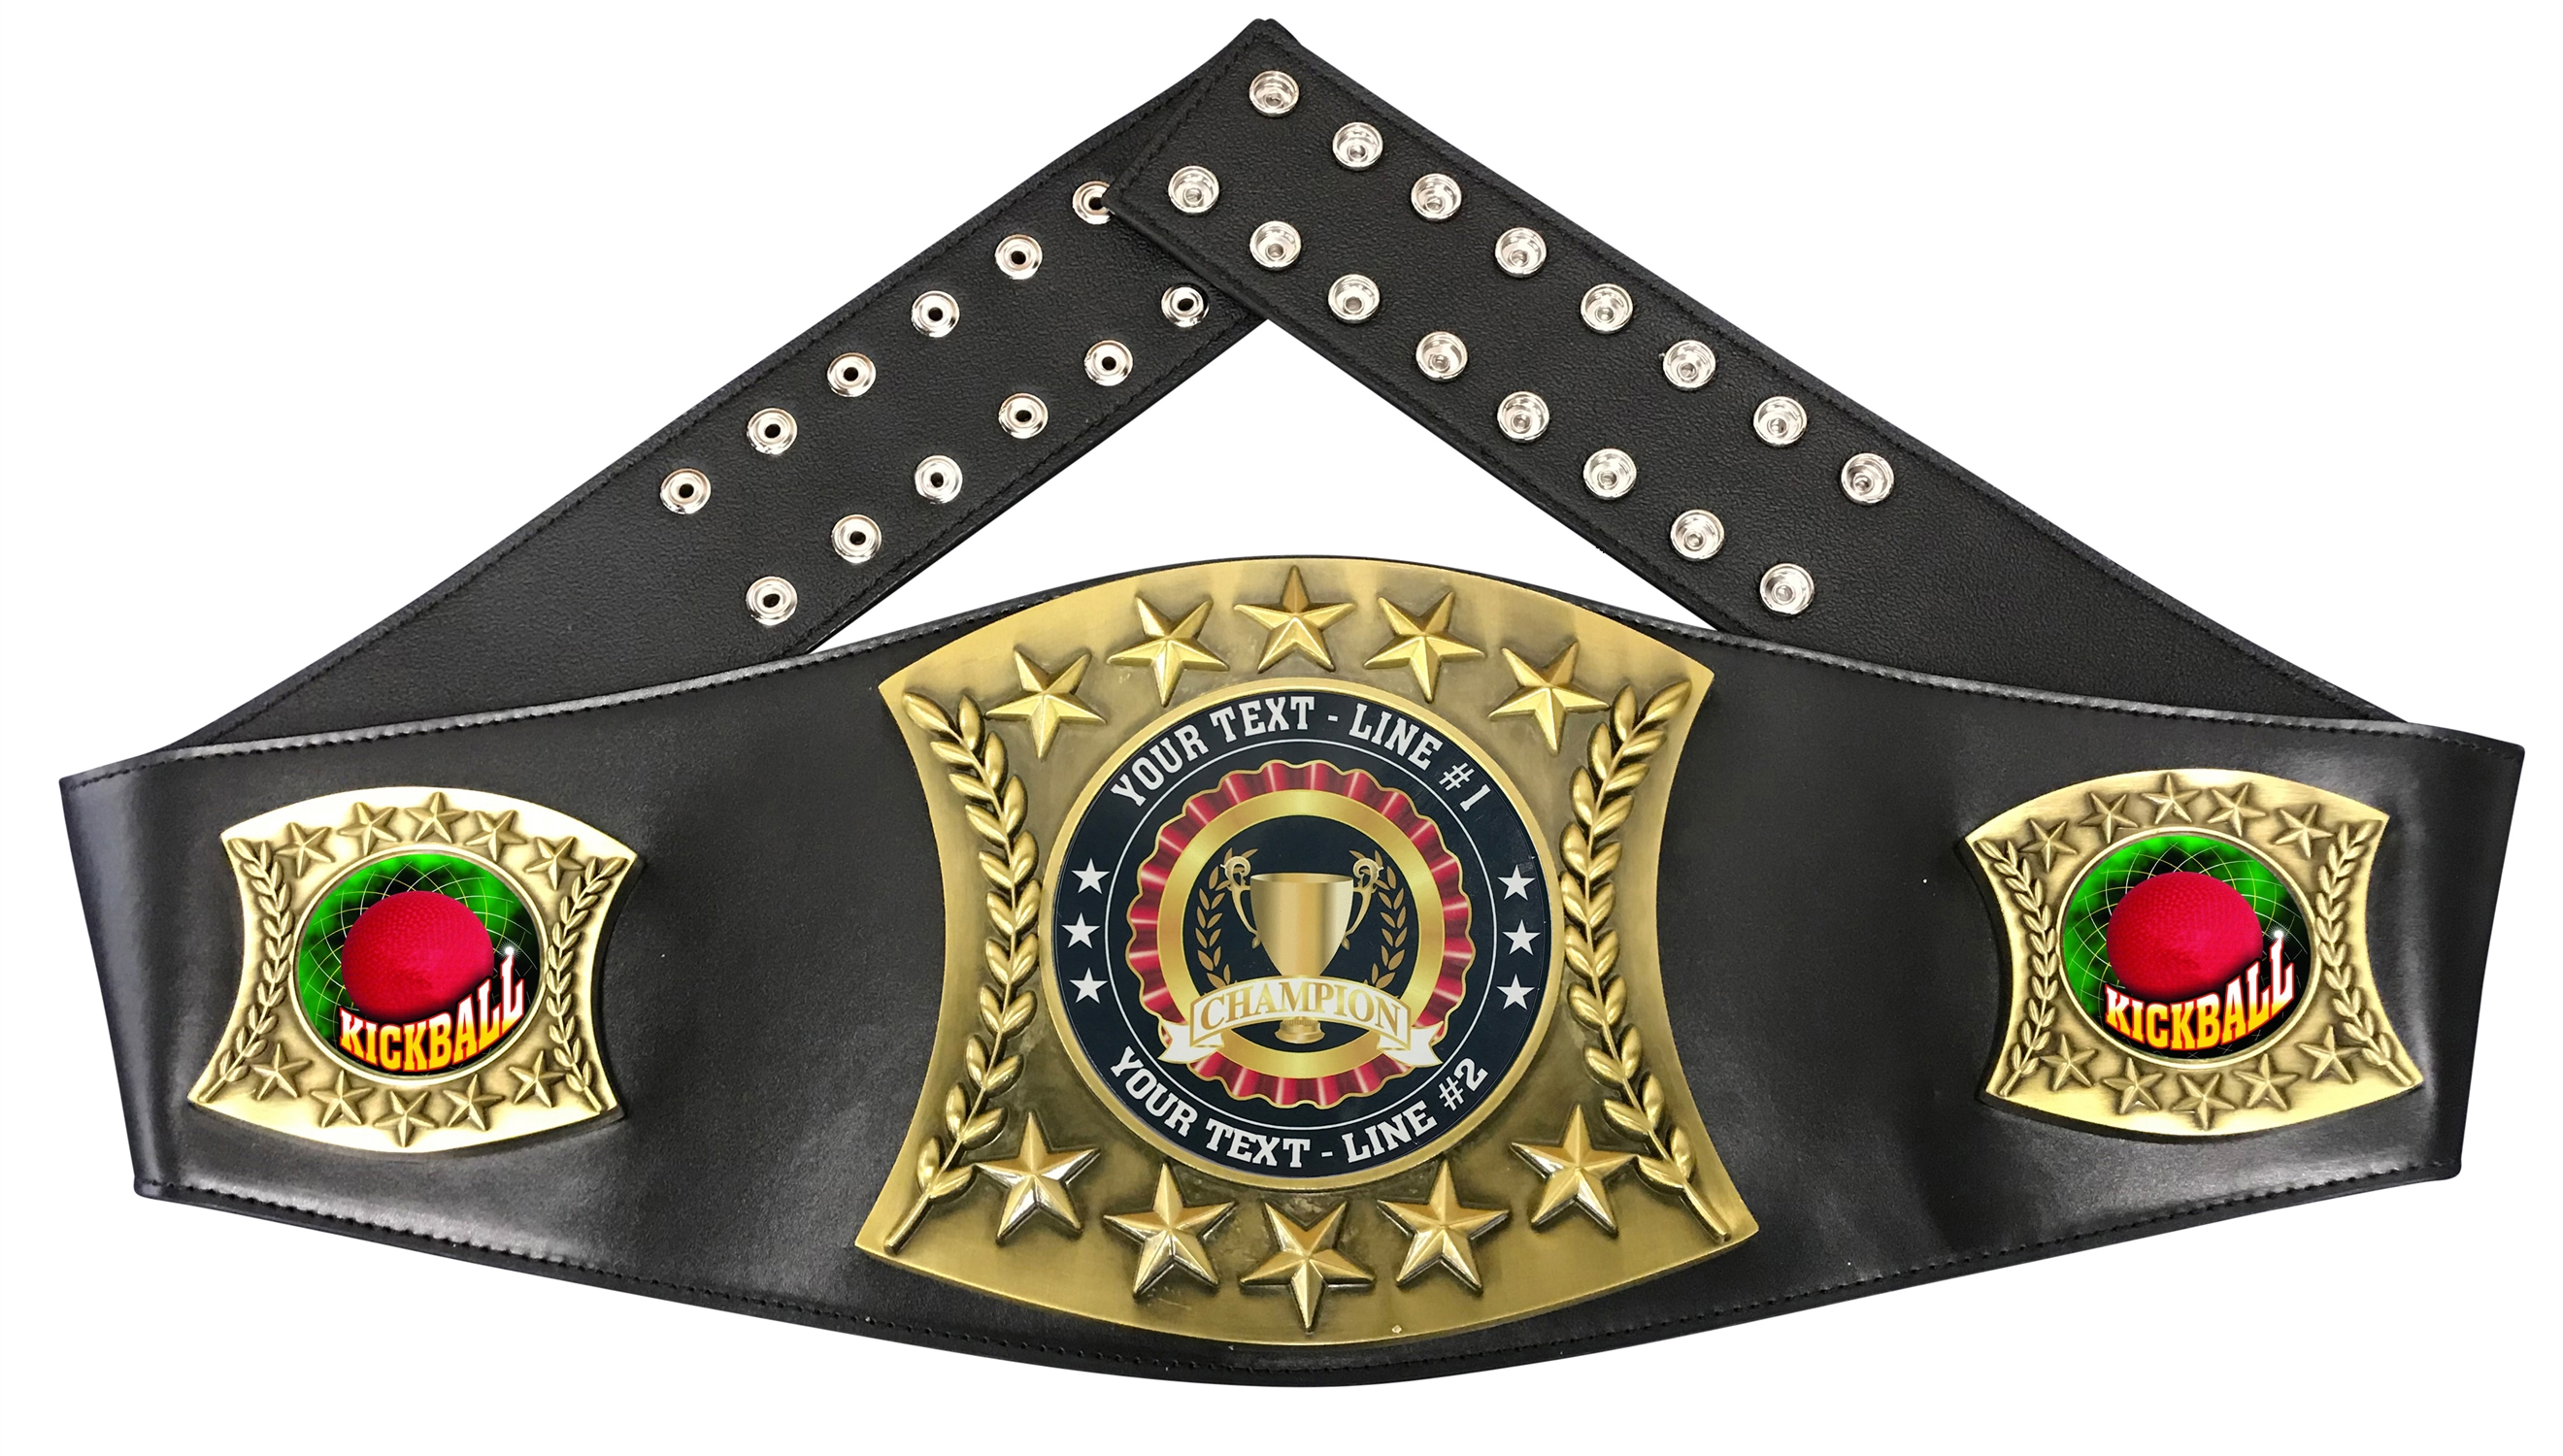 Kickball Personalized Championship Belt